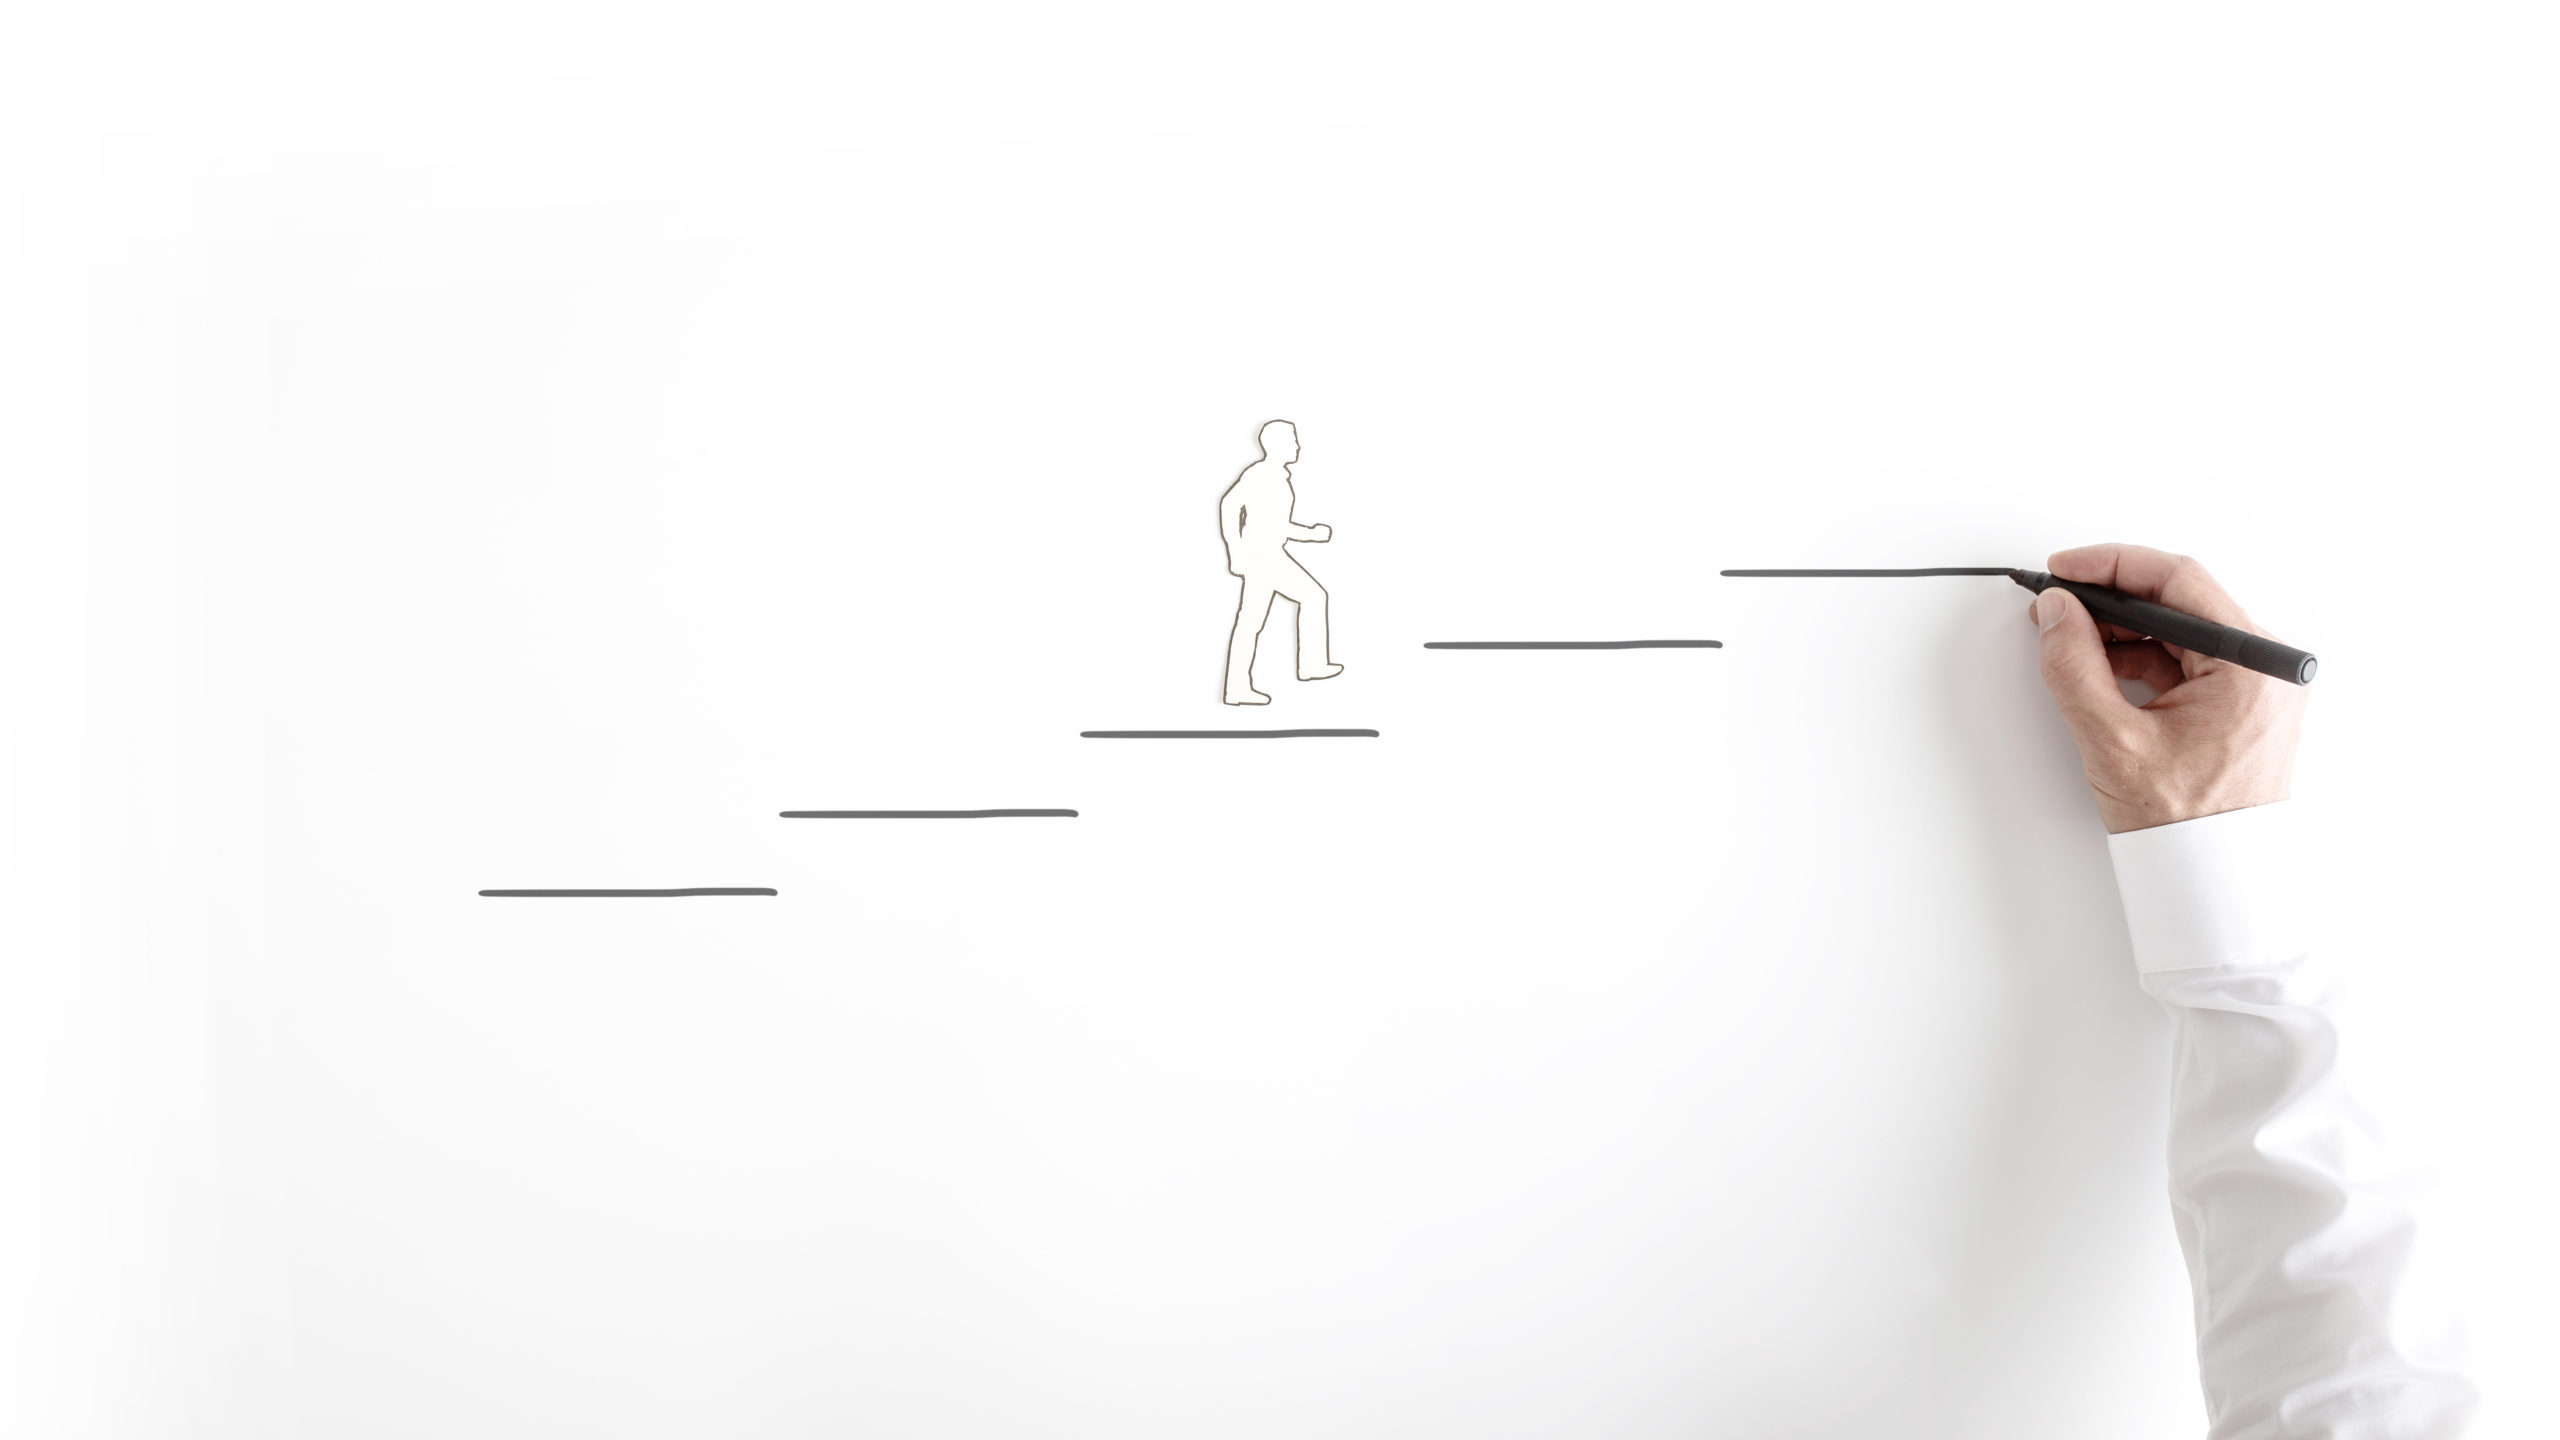 Paper silhouette cutout of a man and a businessman drawing steps